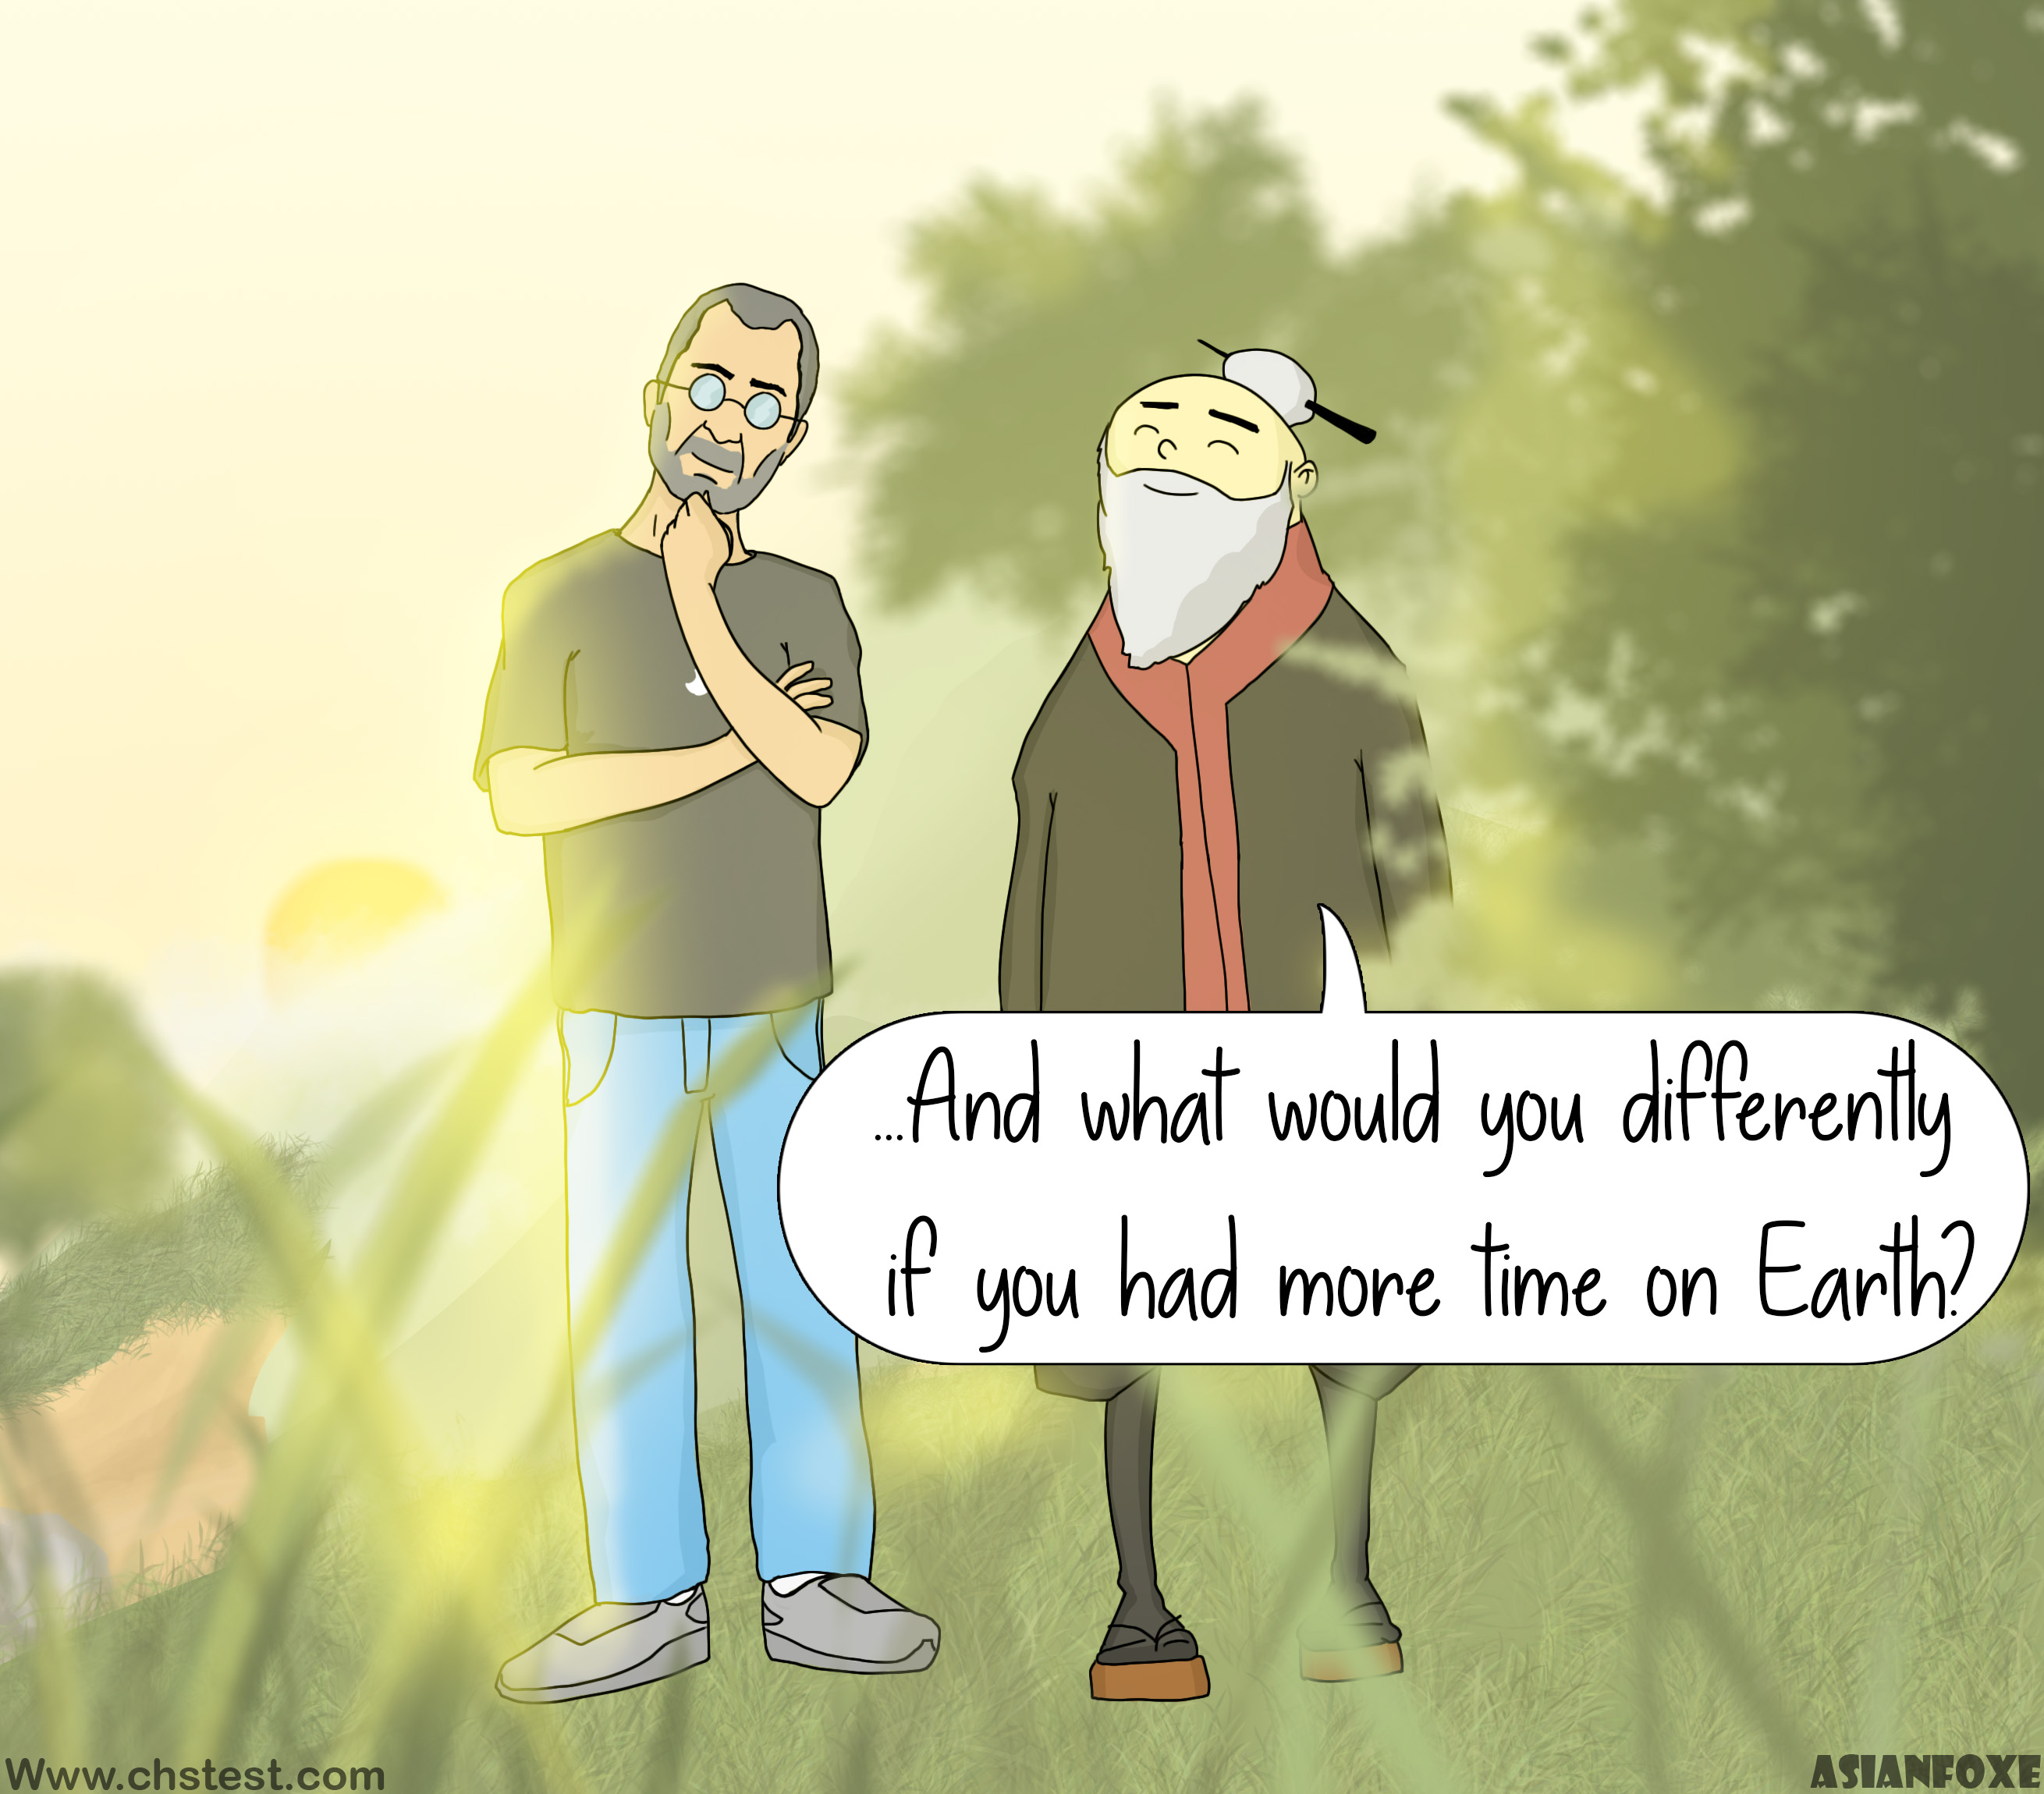 Consciousness: ...And what would you do differently if you had more time on earth?